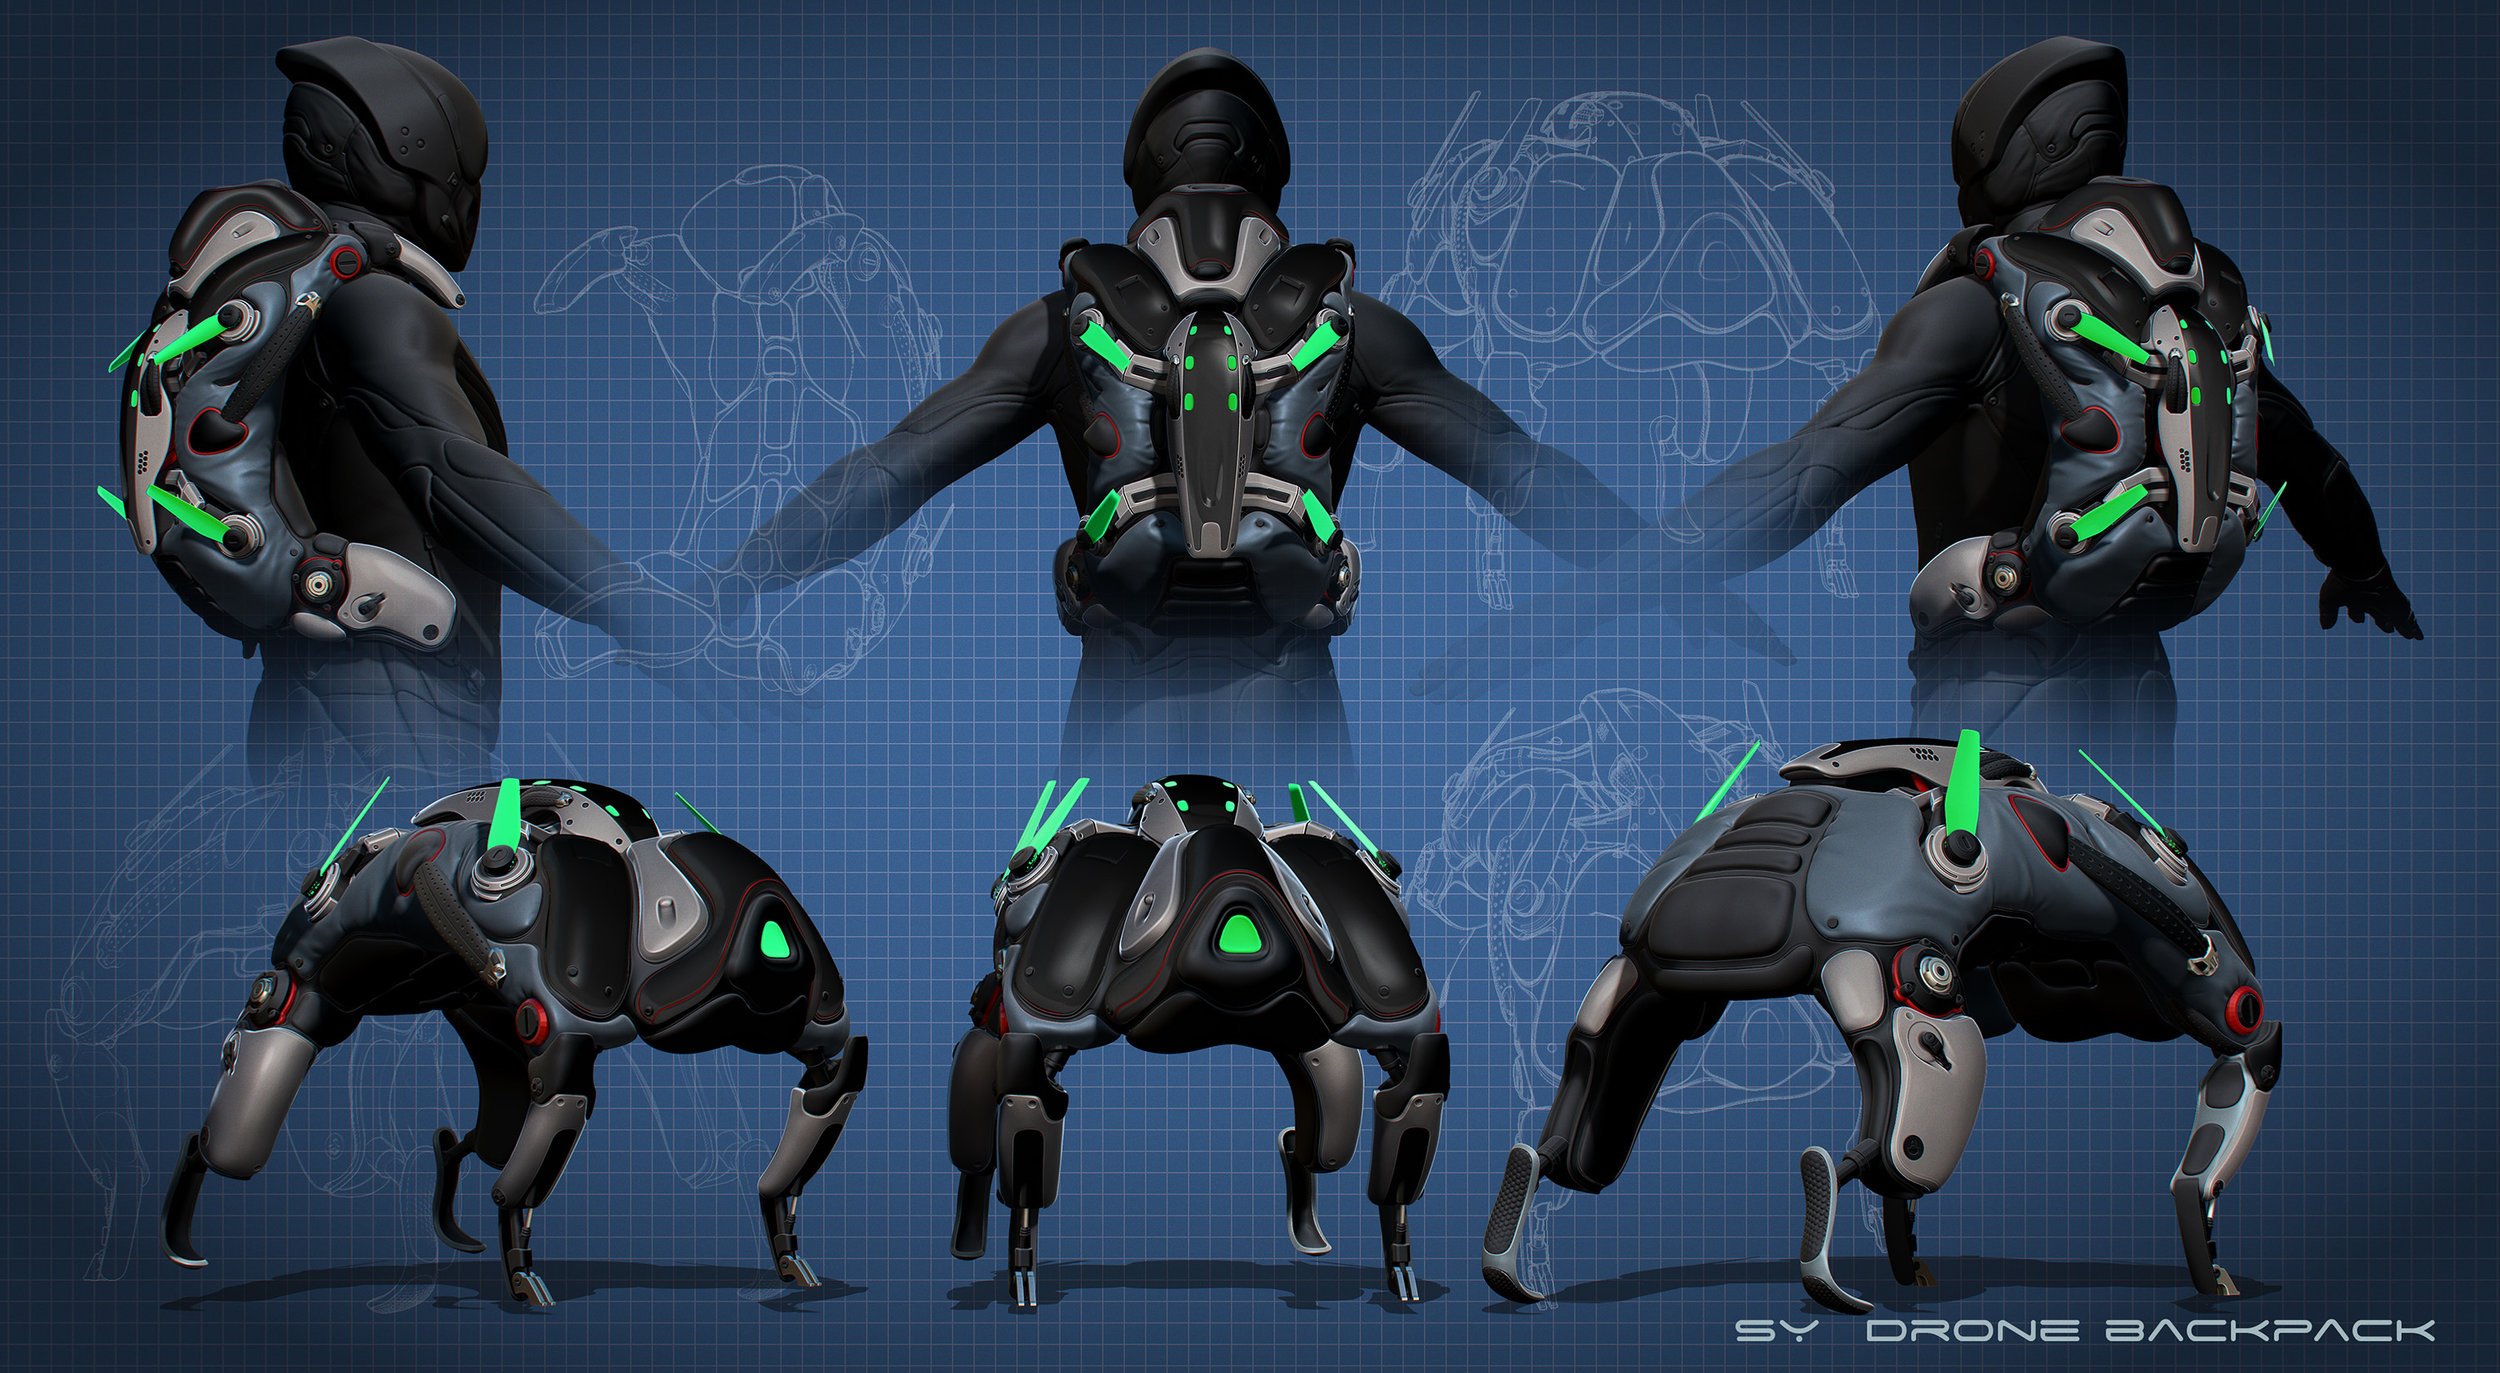 Synedrion Drone Backpack